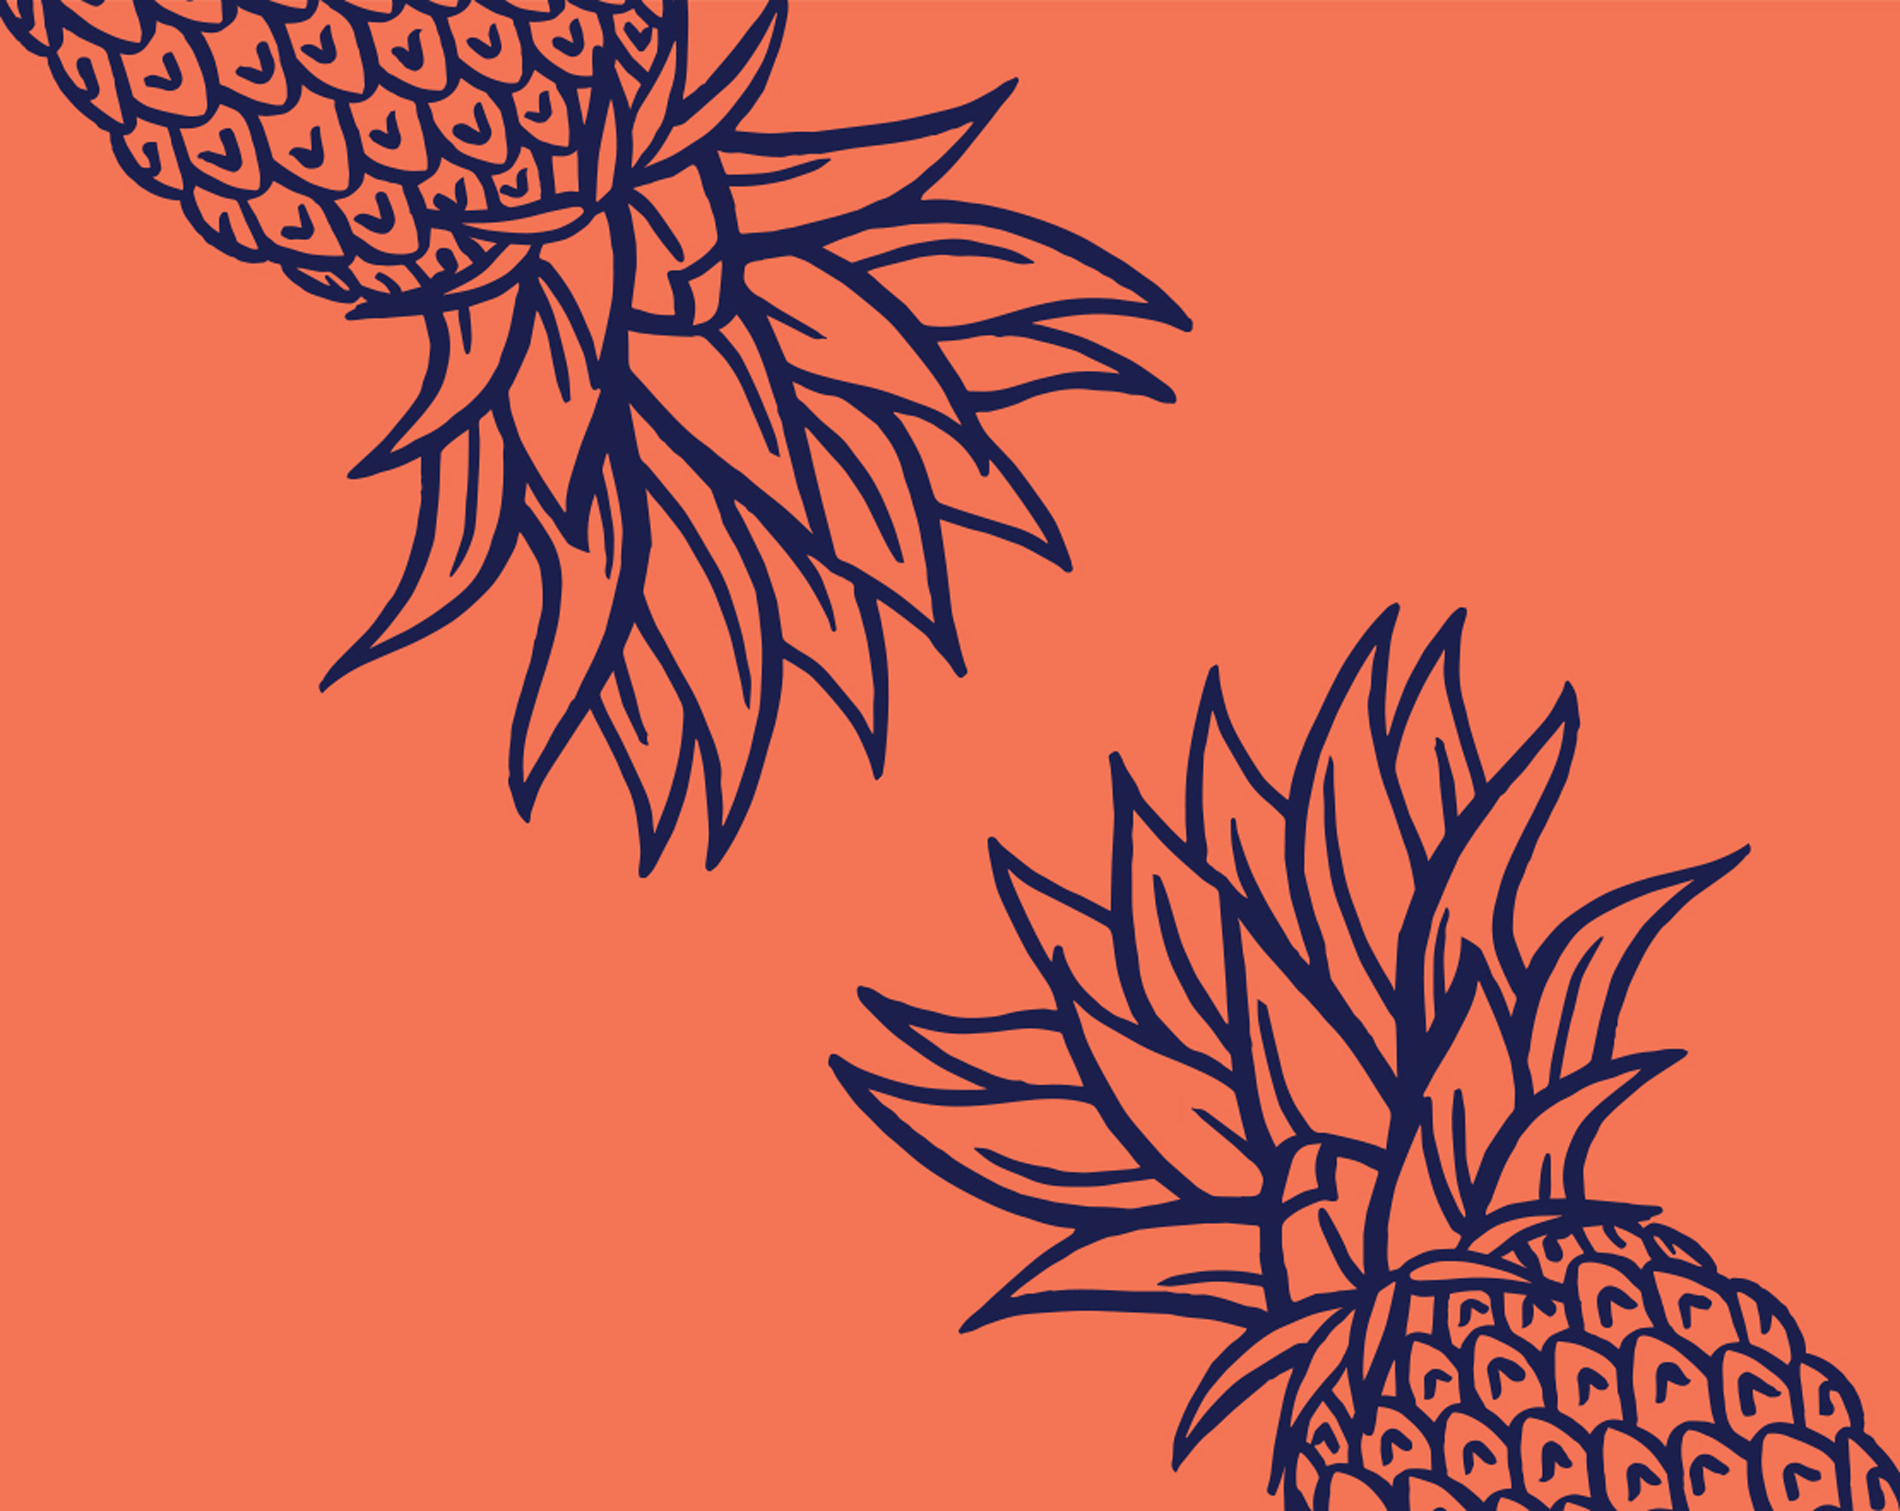 Queensland Literary Awards 2019 pineapple branding